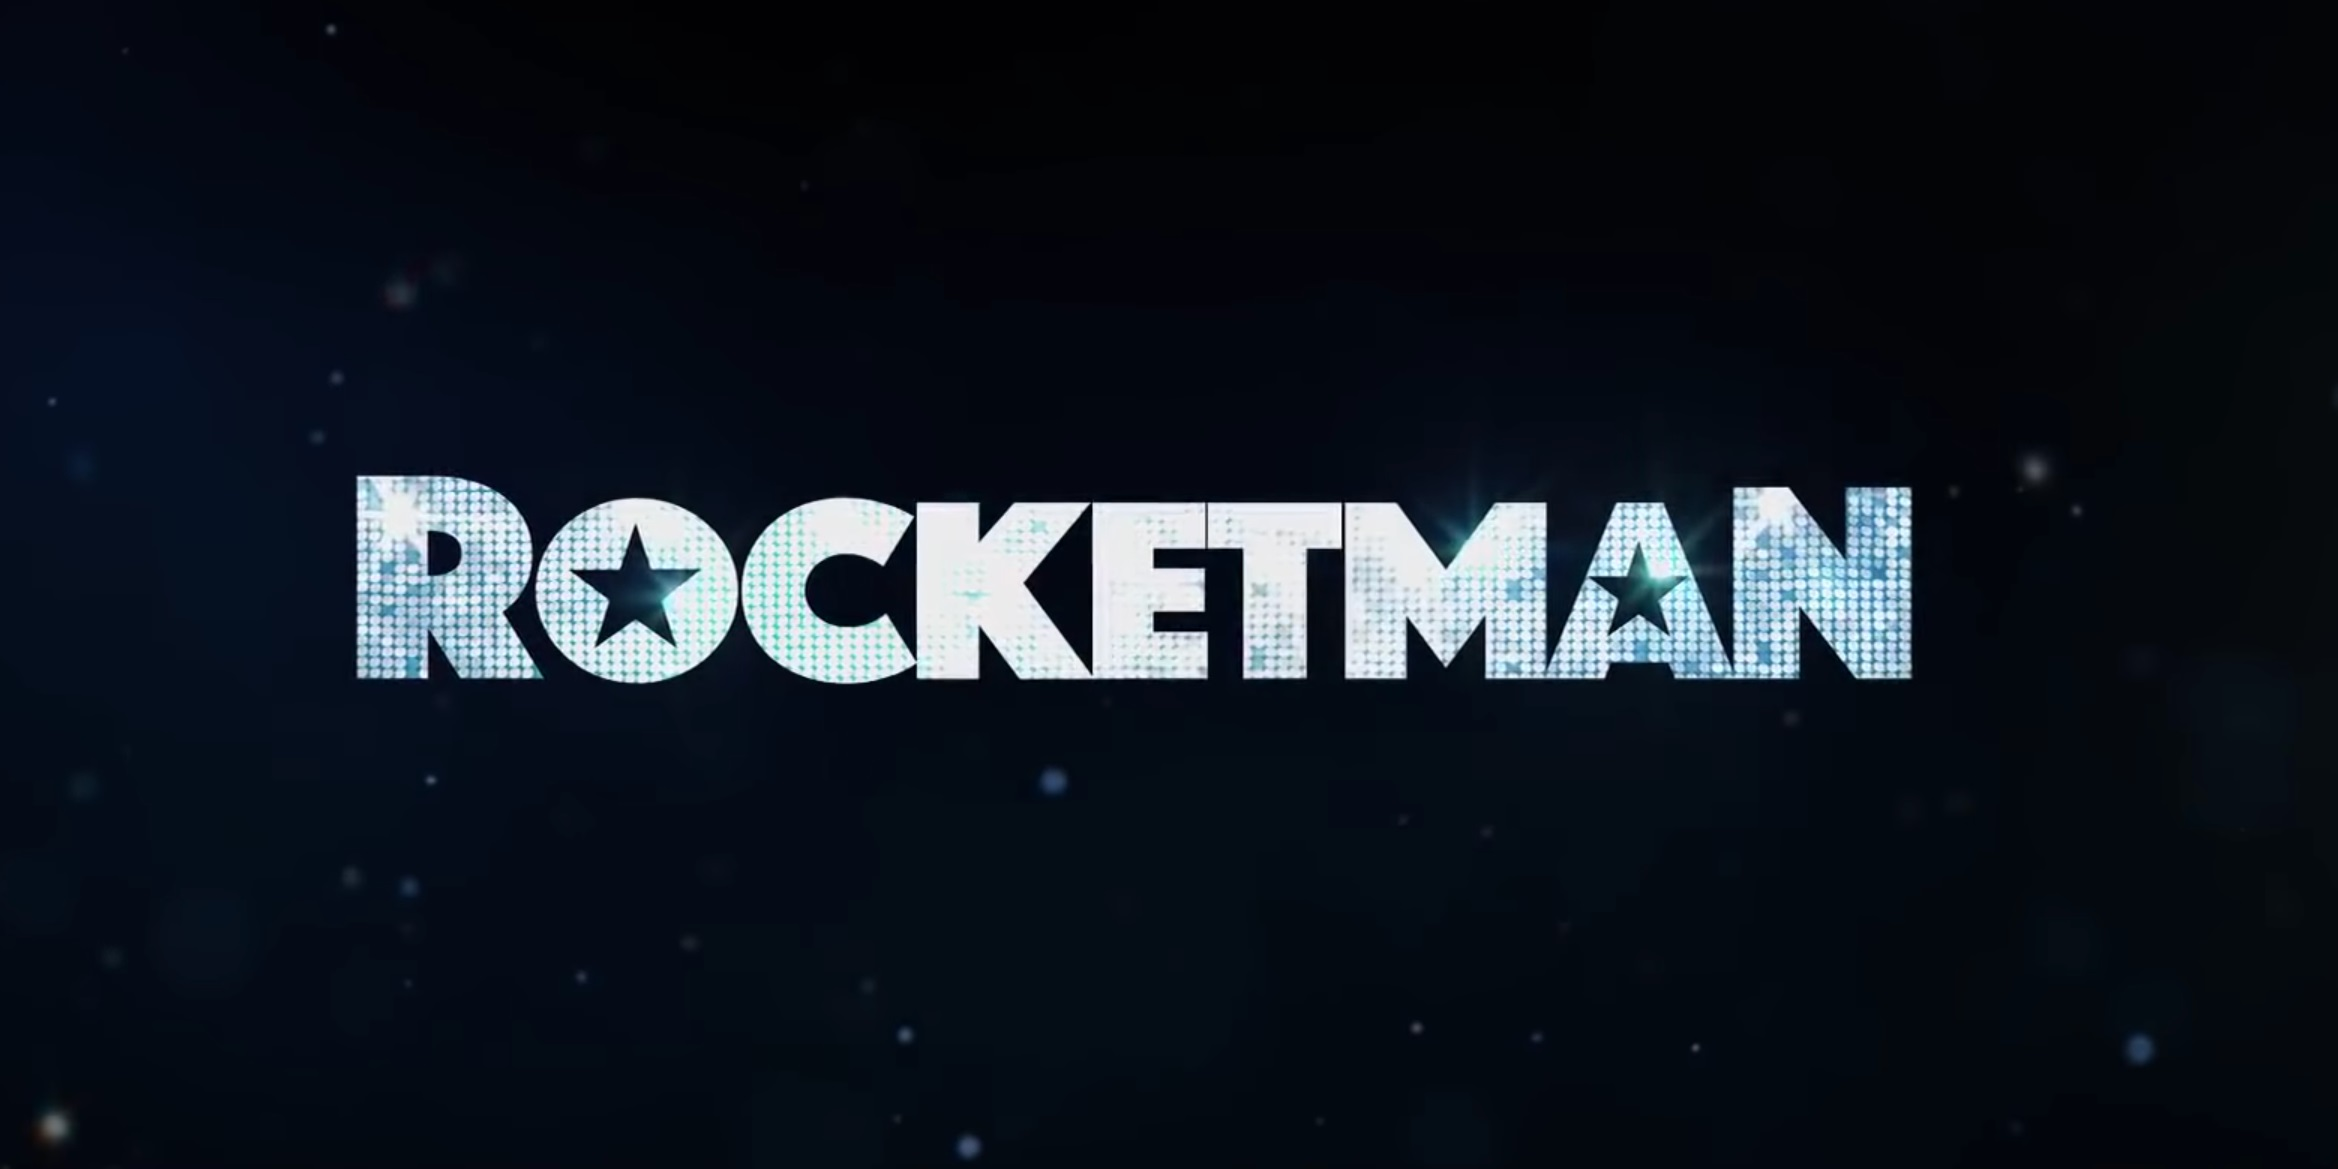 rocketman logo.jpg